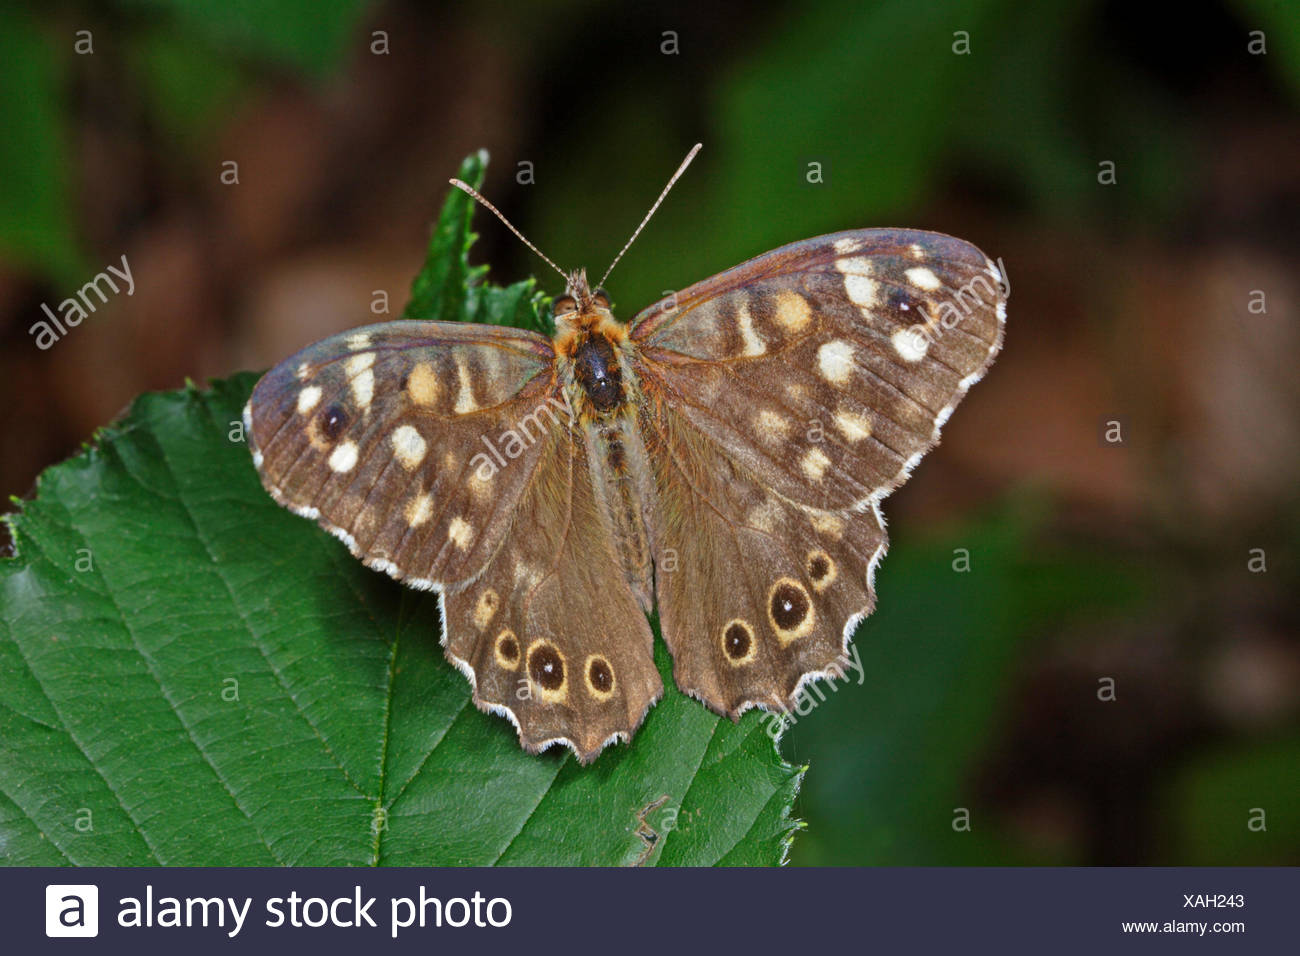 Speckled Wood (Pararge aegeria), on a leaf, Germany - Stock Image